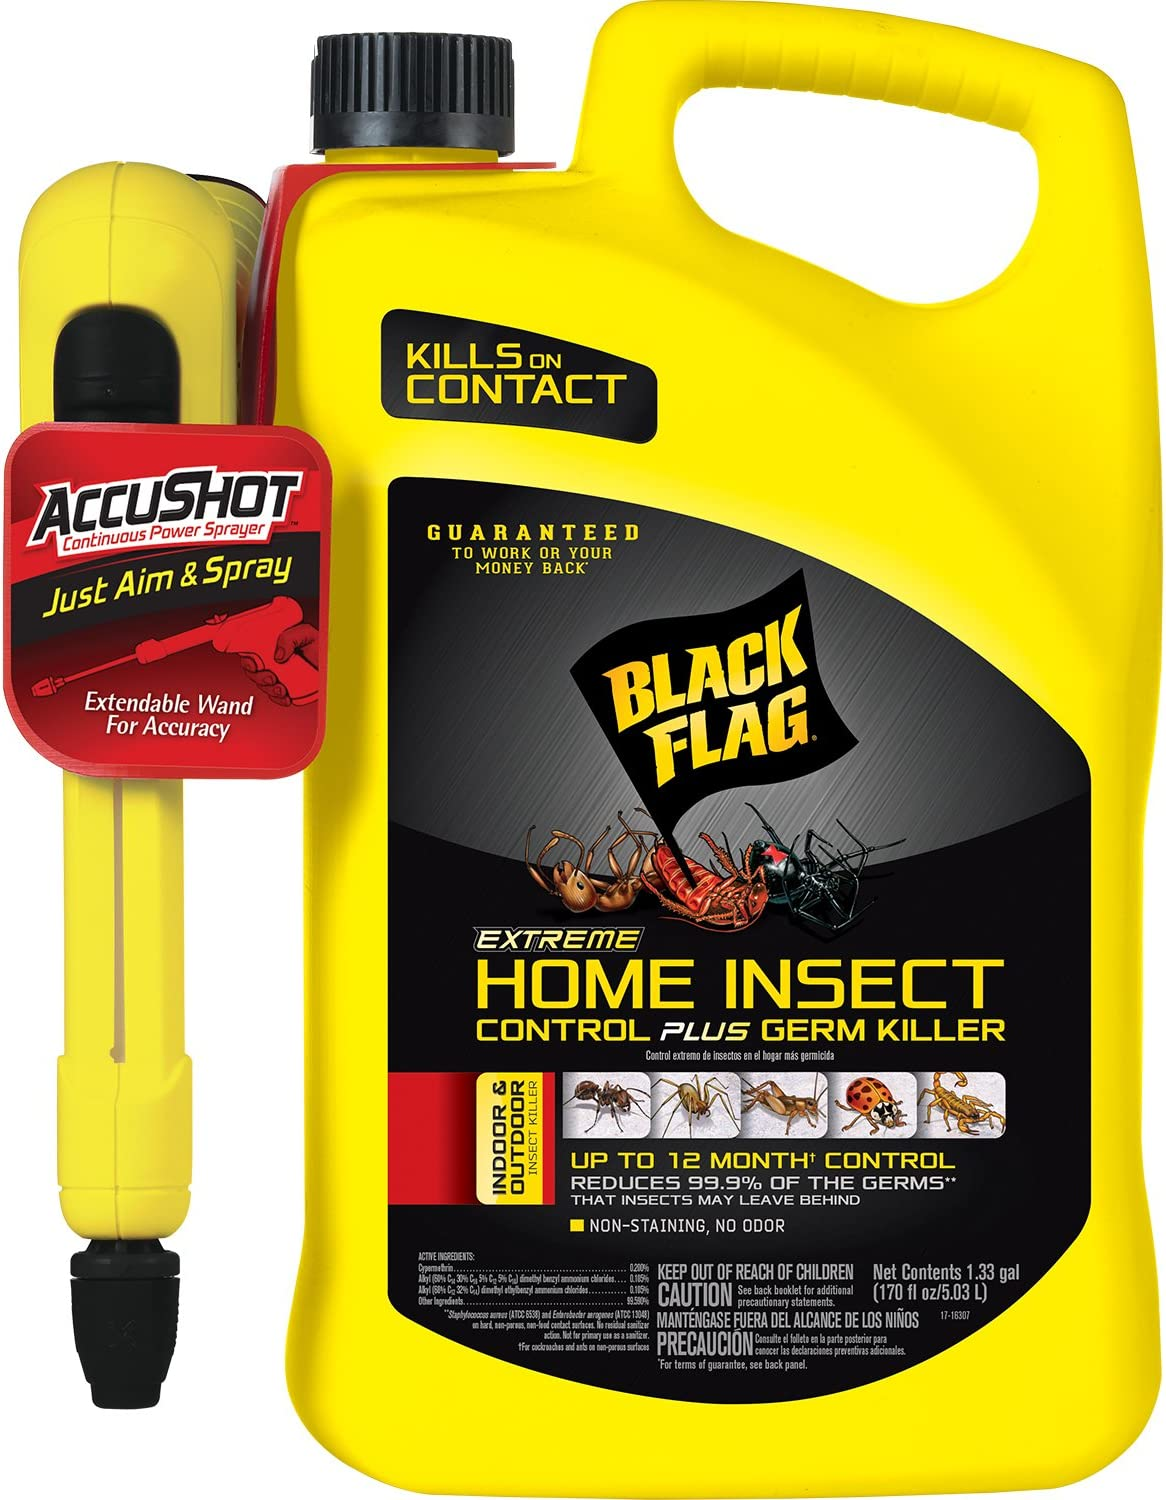 Black Flag Extreme Home Insect Control + Germ Killer (AccuShot Sprayer) 1.33-Gallon